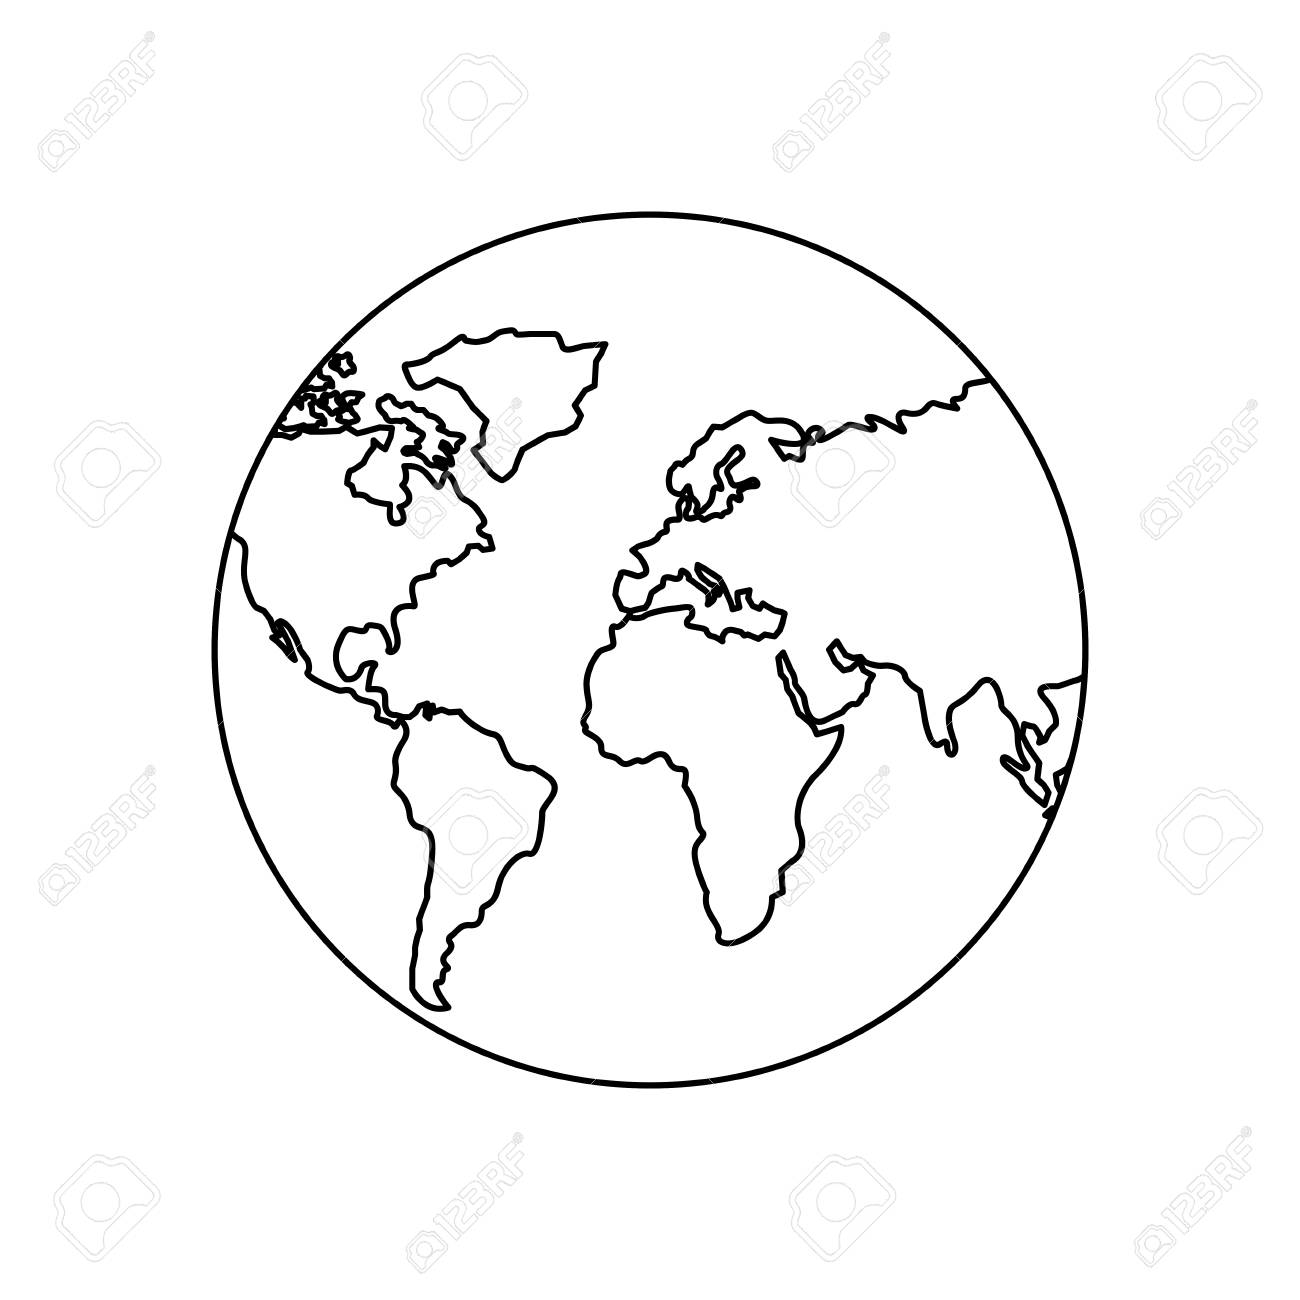 Earth Planet World Globe Map Icon Vector Illustration Outline Design Stock  Vector   95218902